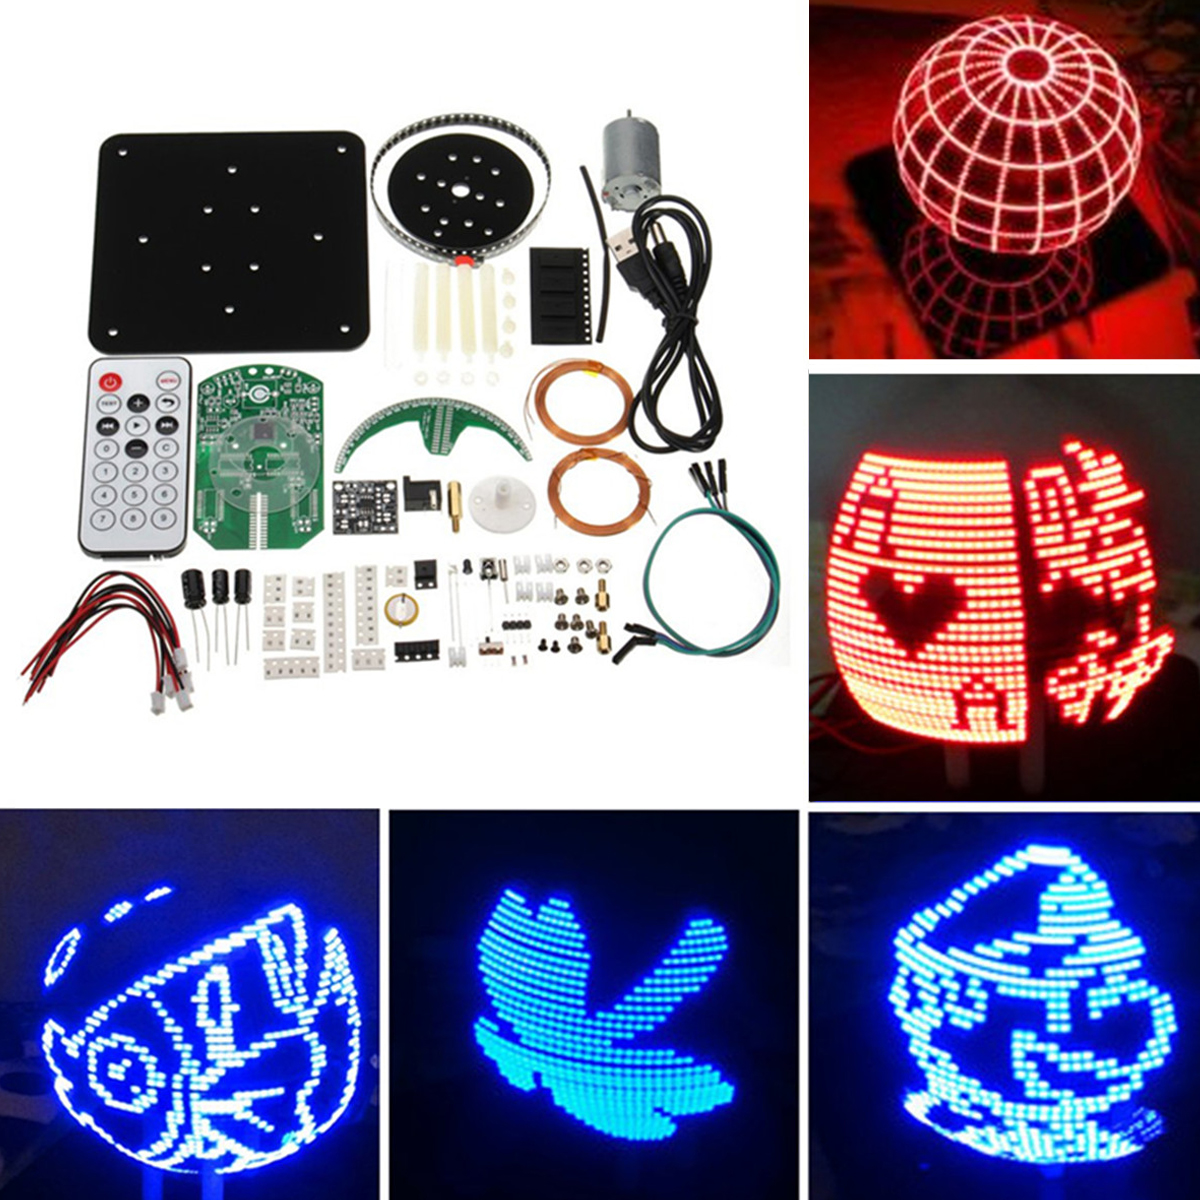 DIY Spherical Rotation LED Kit Lamp POV Welding Training Kit Romantic Rotary Clock Parts Blue and Red Colors ball pov spherical rotary led kit 56 lamp pov rotating clock parts diy electronic welding kit rotating lamp